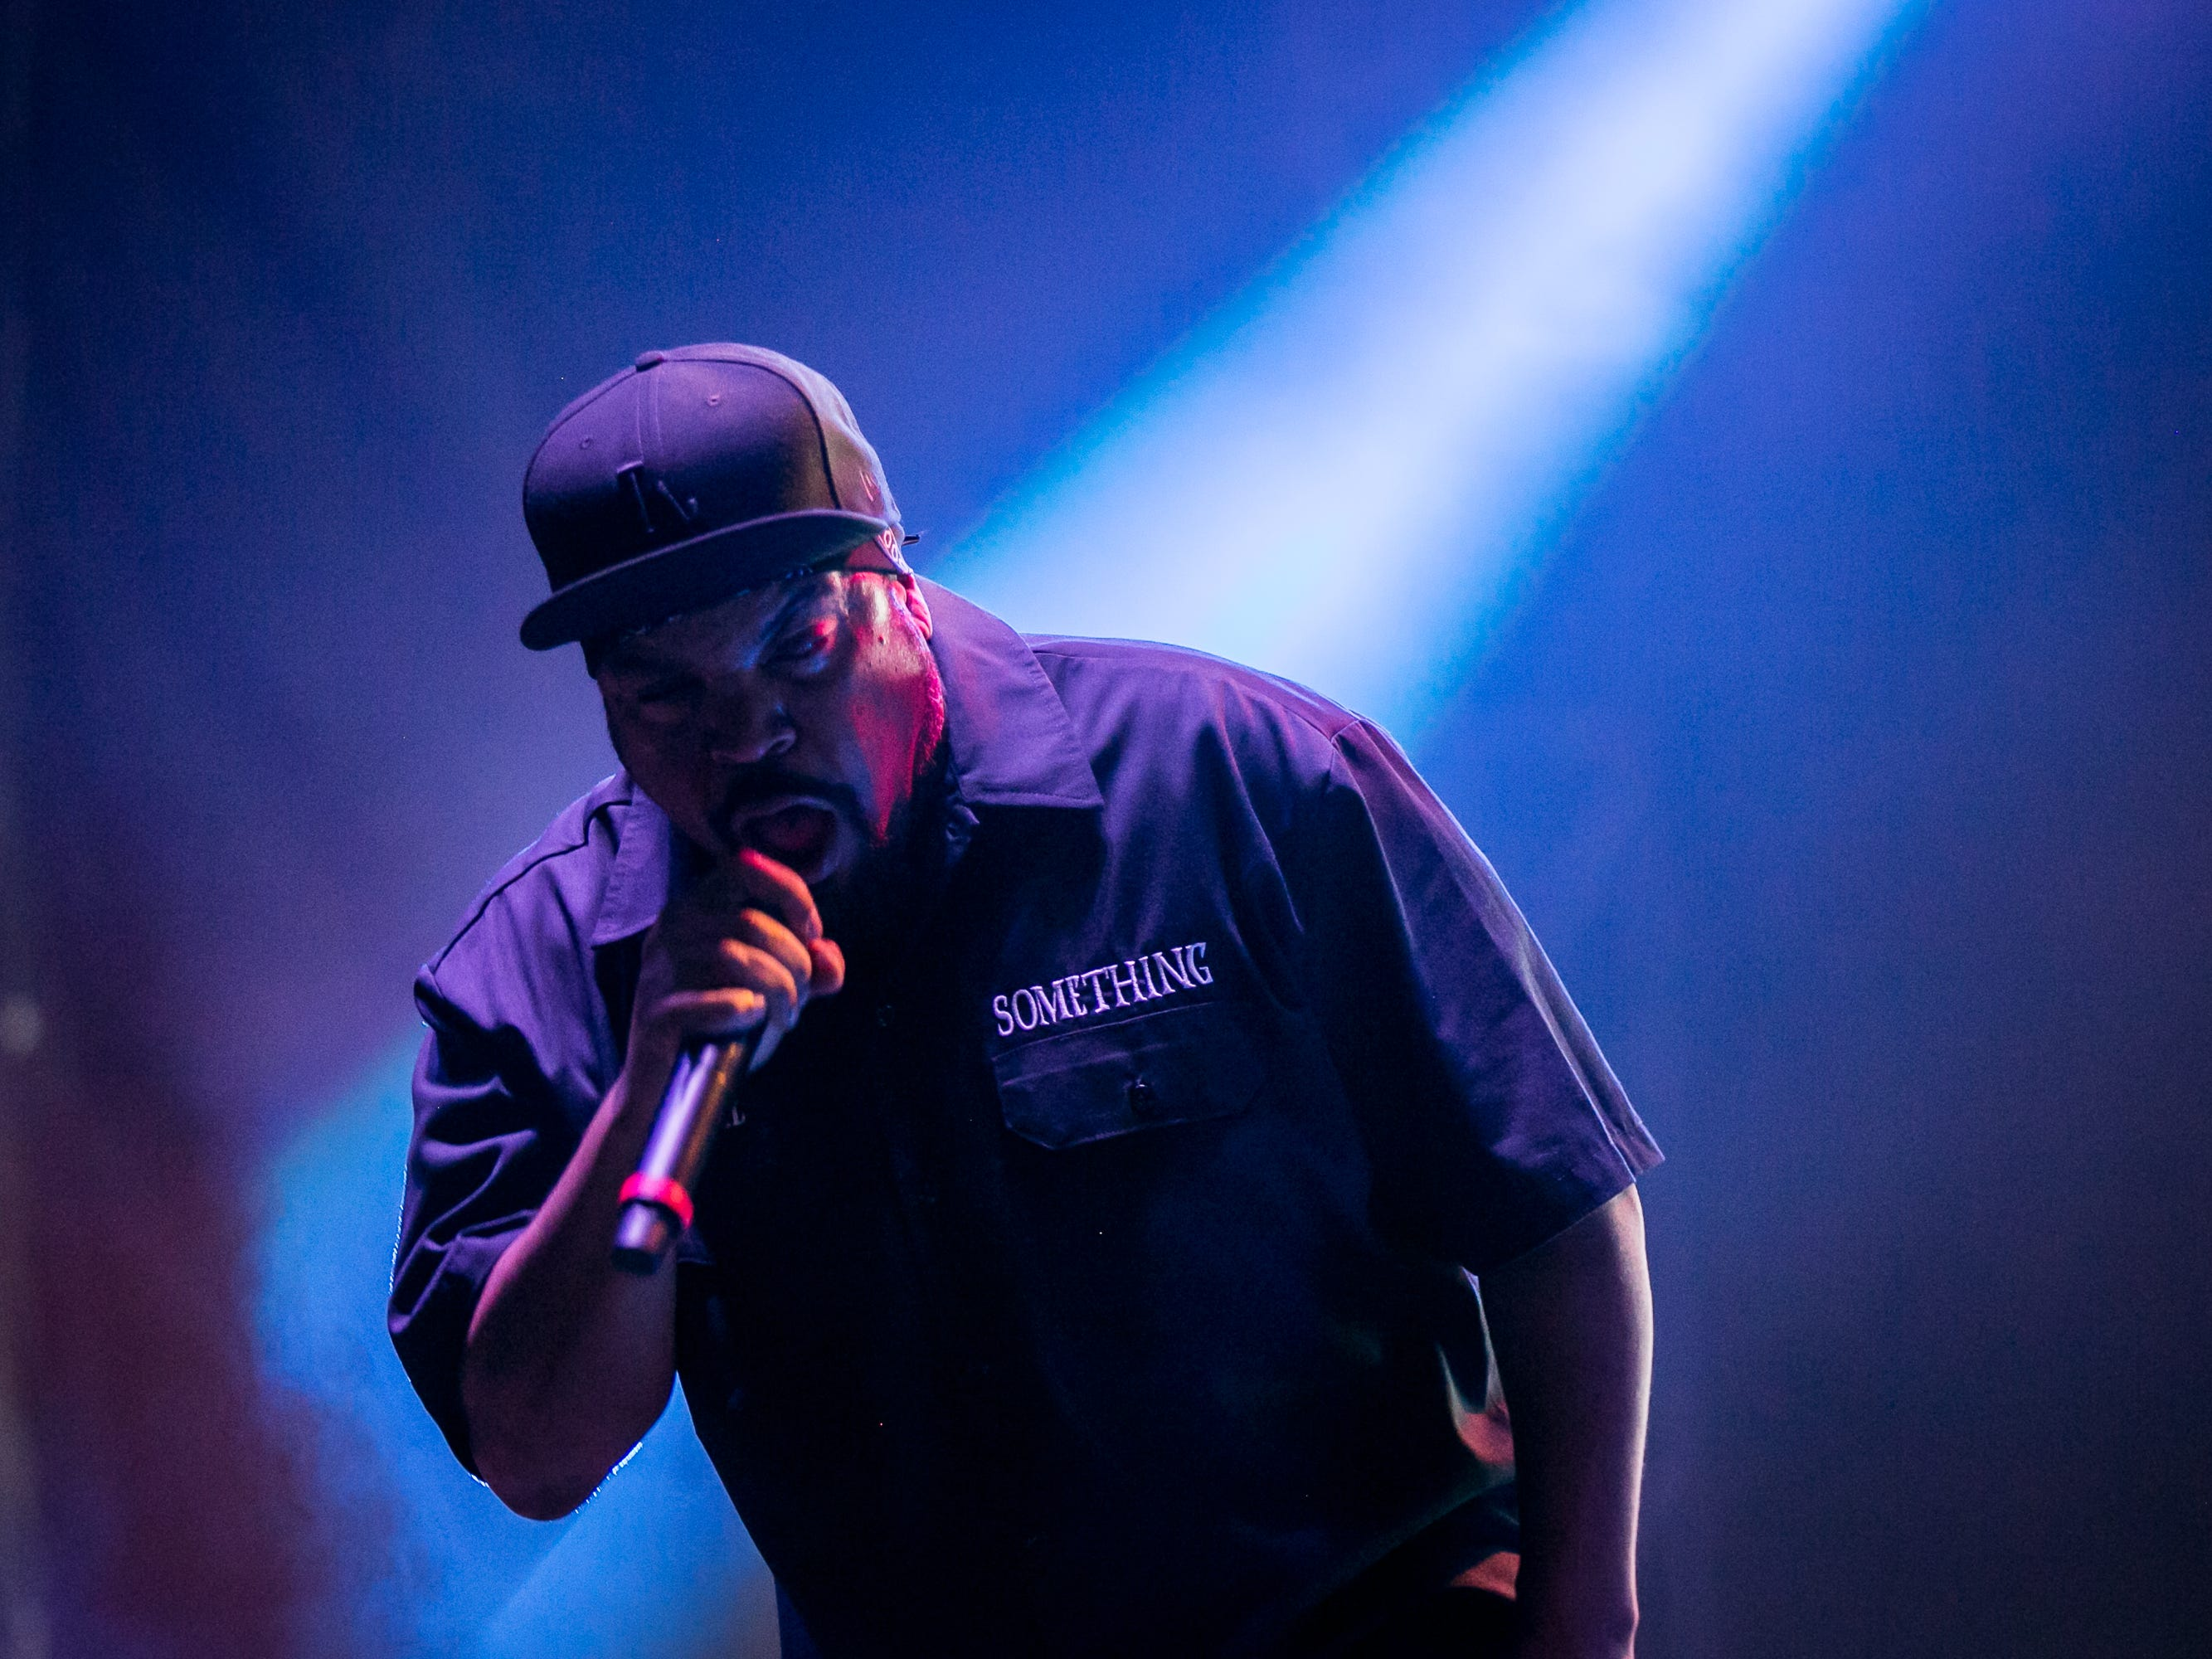 Ice Cube performs at Pot of Gold Music Festival at Steele Indian School Park in Phoenix on Friday, March 15.